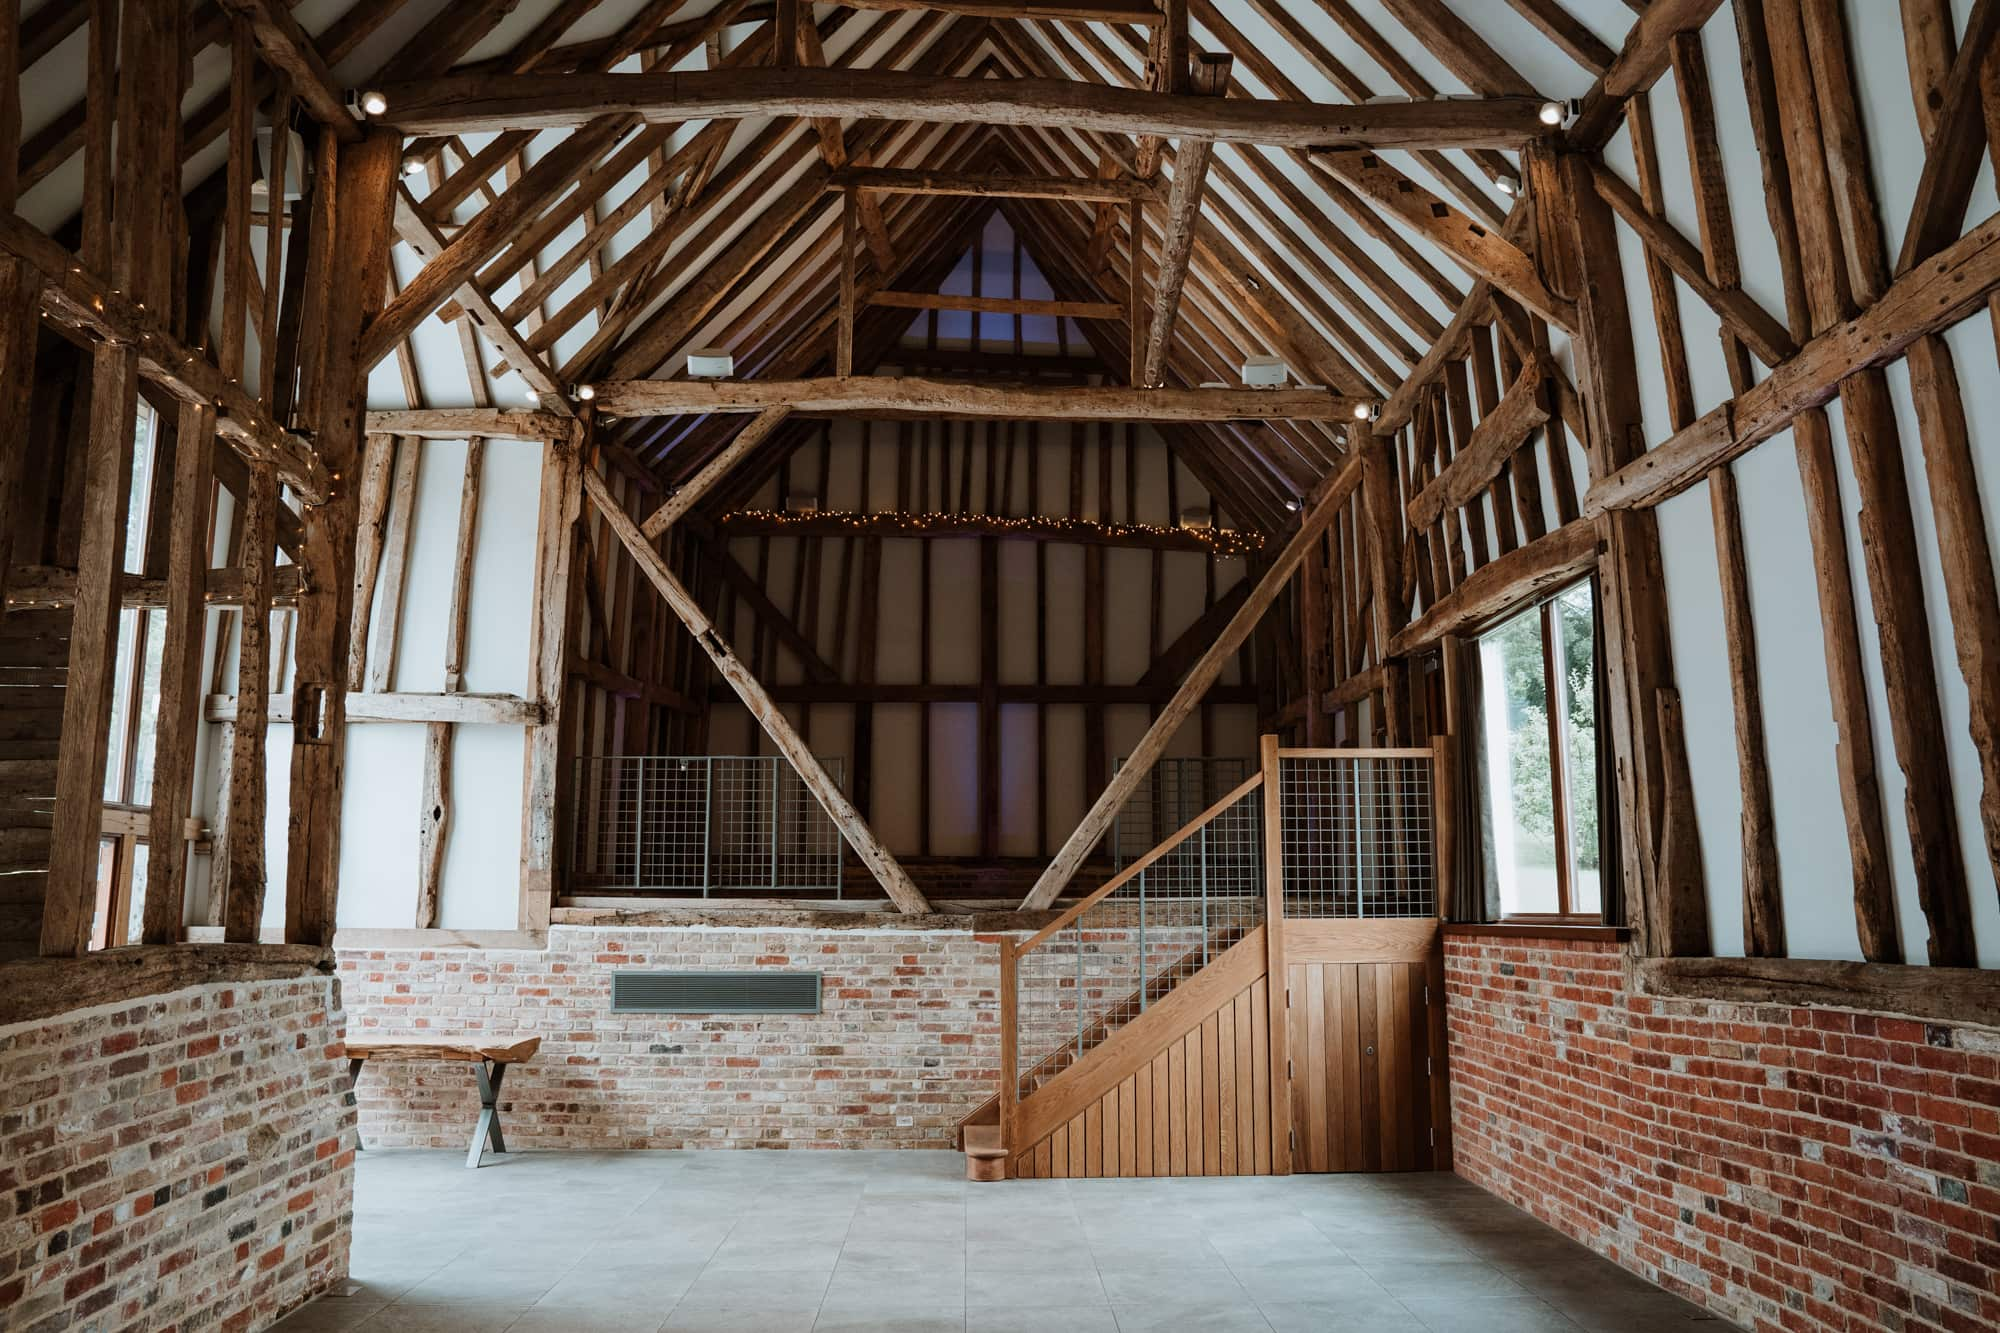 The interior vaulted roof of the Oak Barn